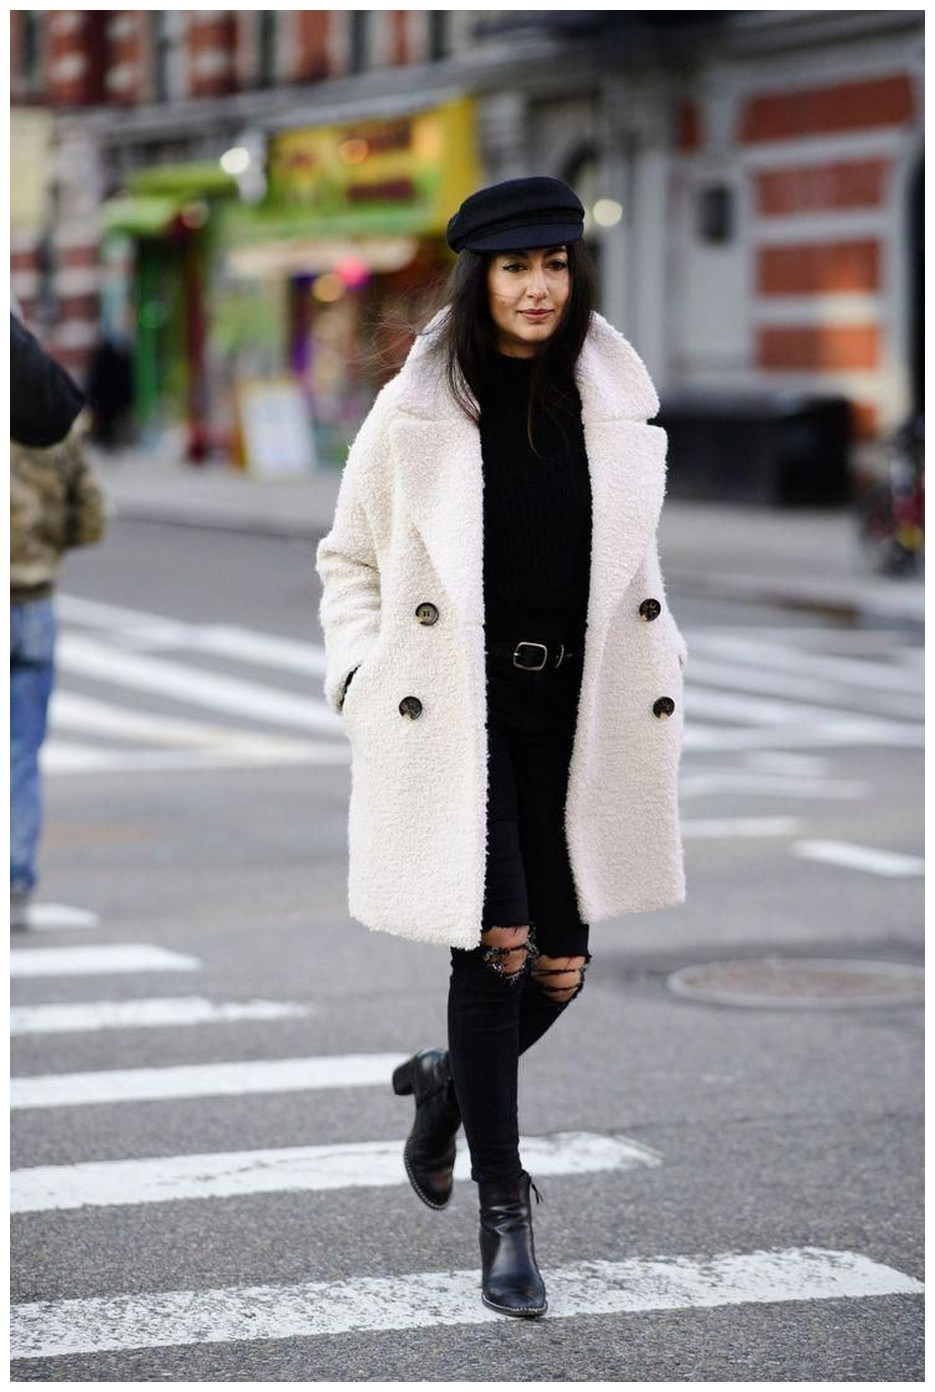 50+ popular winter outfits ideas to copy right now 29